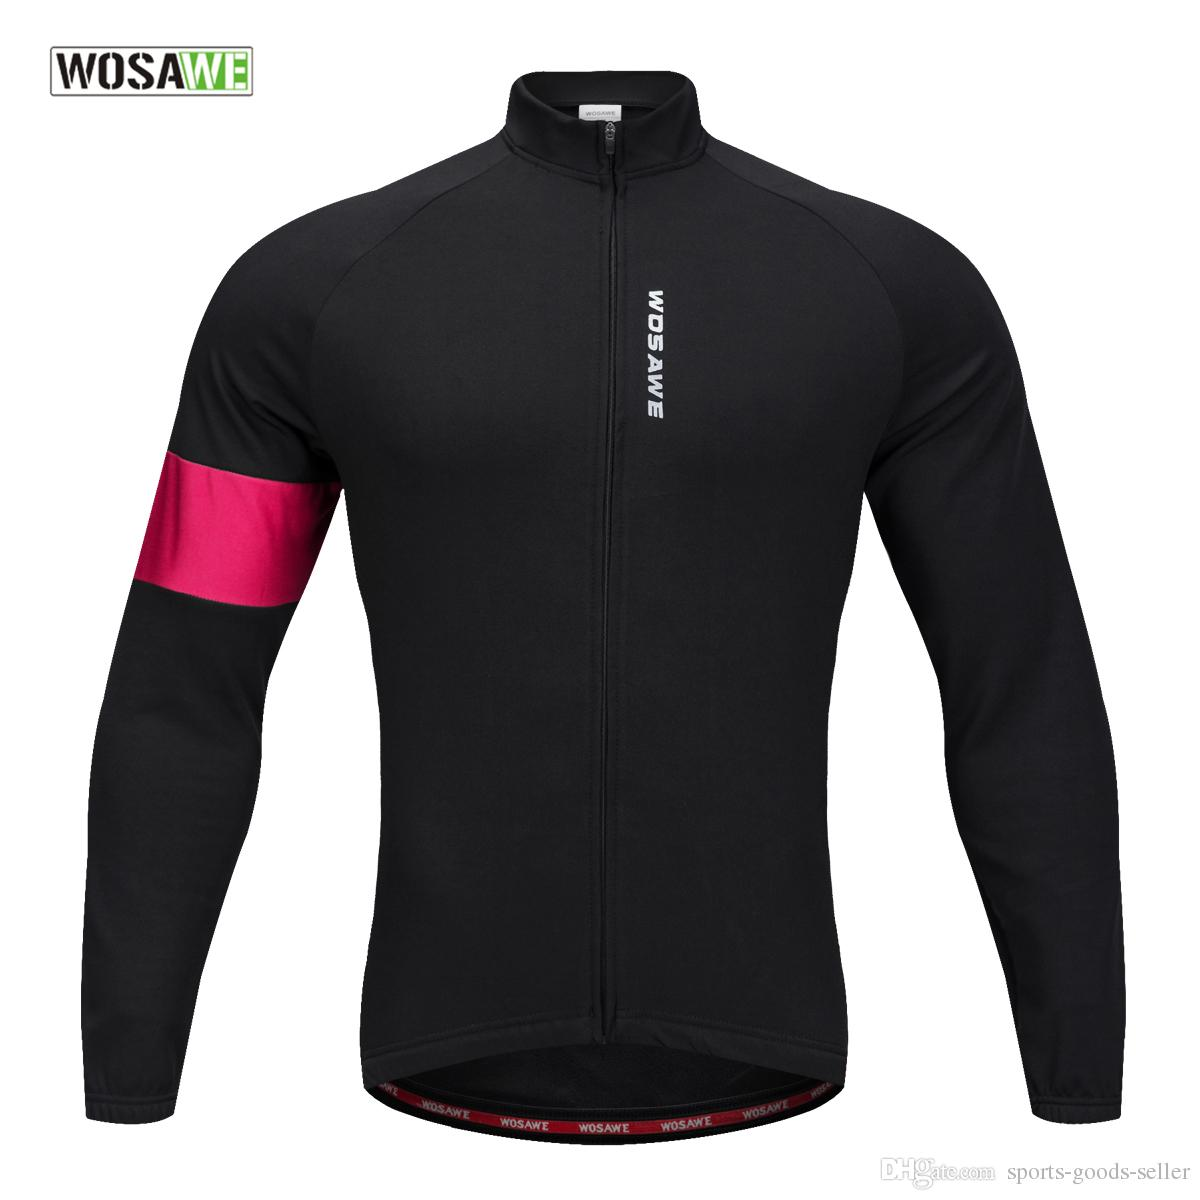 WOSAWE New Men s Long Sleeve Jersey Thermal Fleece Cycling Wear for ... 62267b82b